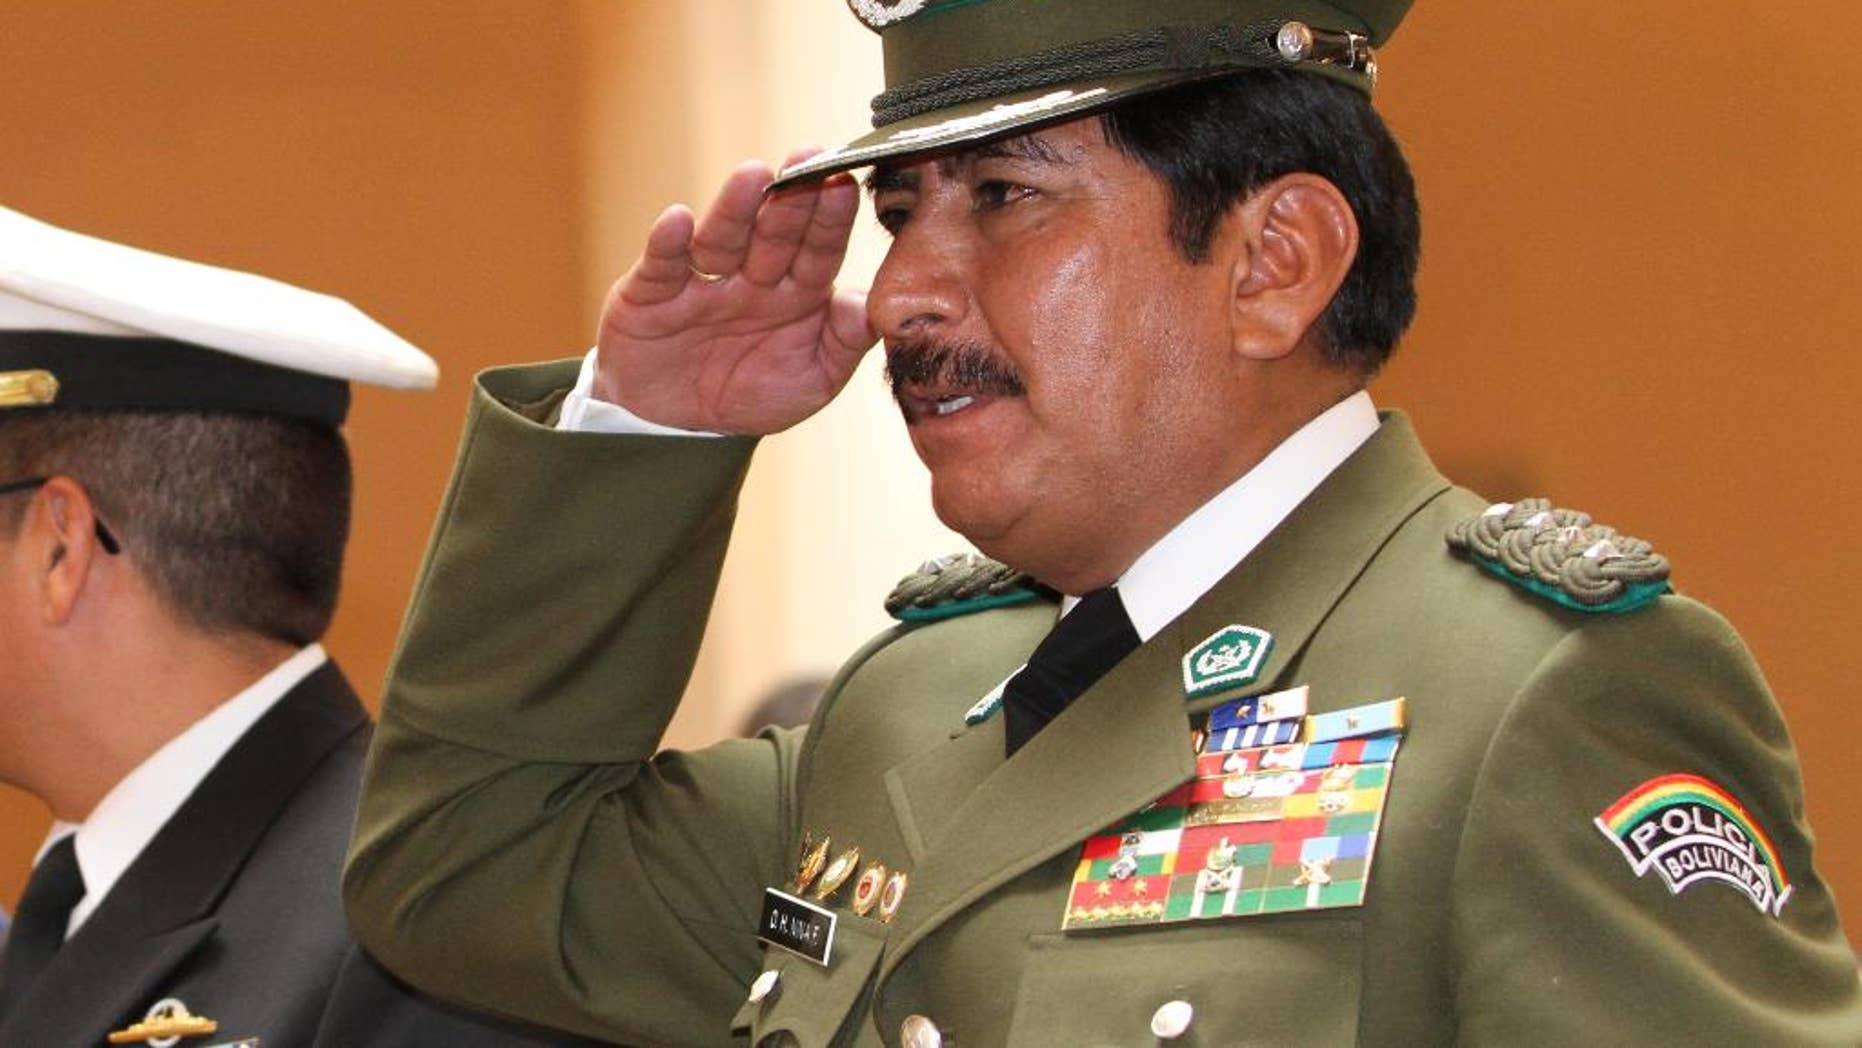 In this Jan. 24, 2010 photo, Bolivia's National Police Chief Col. Oscar Nina salutes during his swearing-in ceremony at the government palace in La Paz, Bolivia. One year prior, Nina was named anti-drug police chief. In March of 2015, the retired police general who reorganized Bolivia's counter-narcotics force after President Evo Morales expelled U.S. drug agents, is under investigation for illicit enrichment and drug trafficking ties. A judge was to decide Wednesday, March 4, 2015 whether Gen. Nina should be jailed. (AP Photo/Juan Karita)